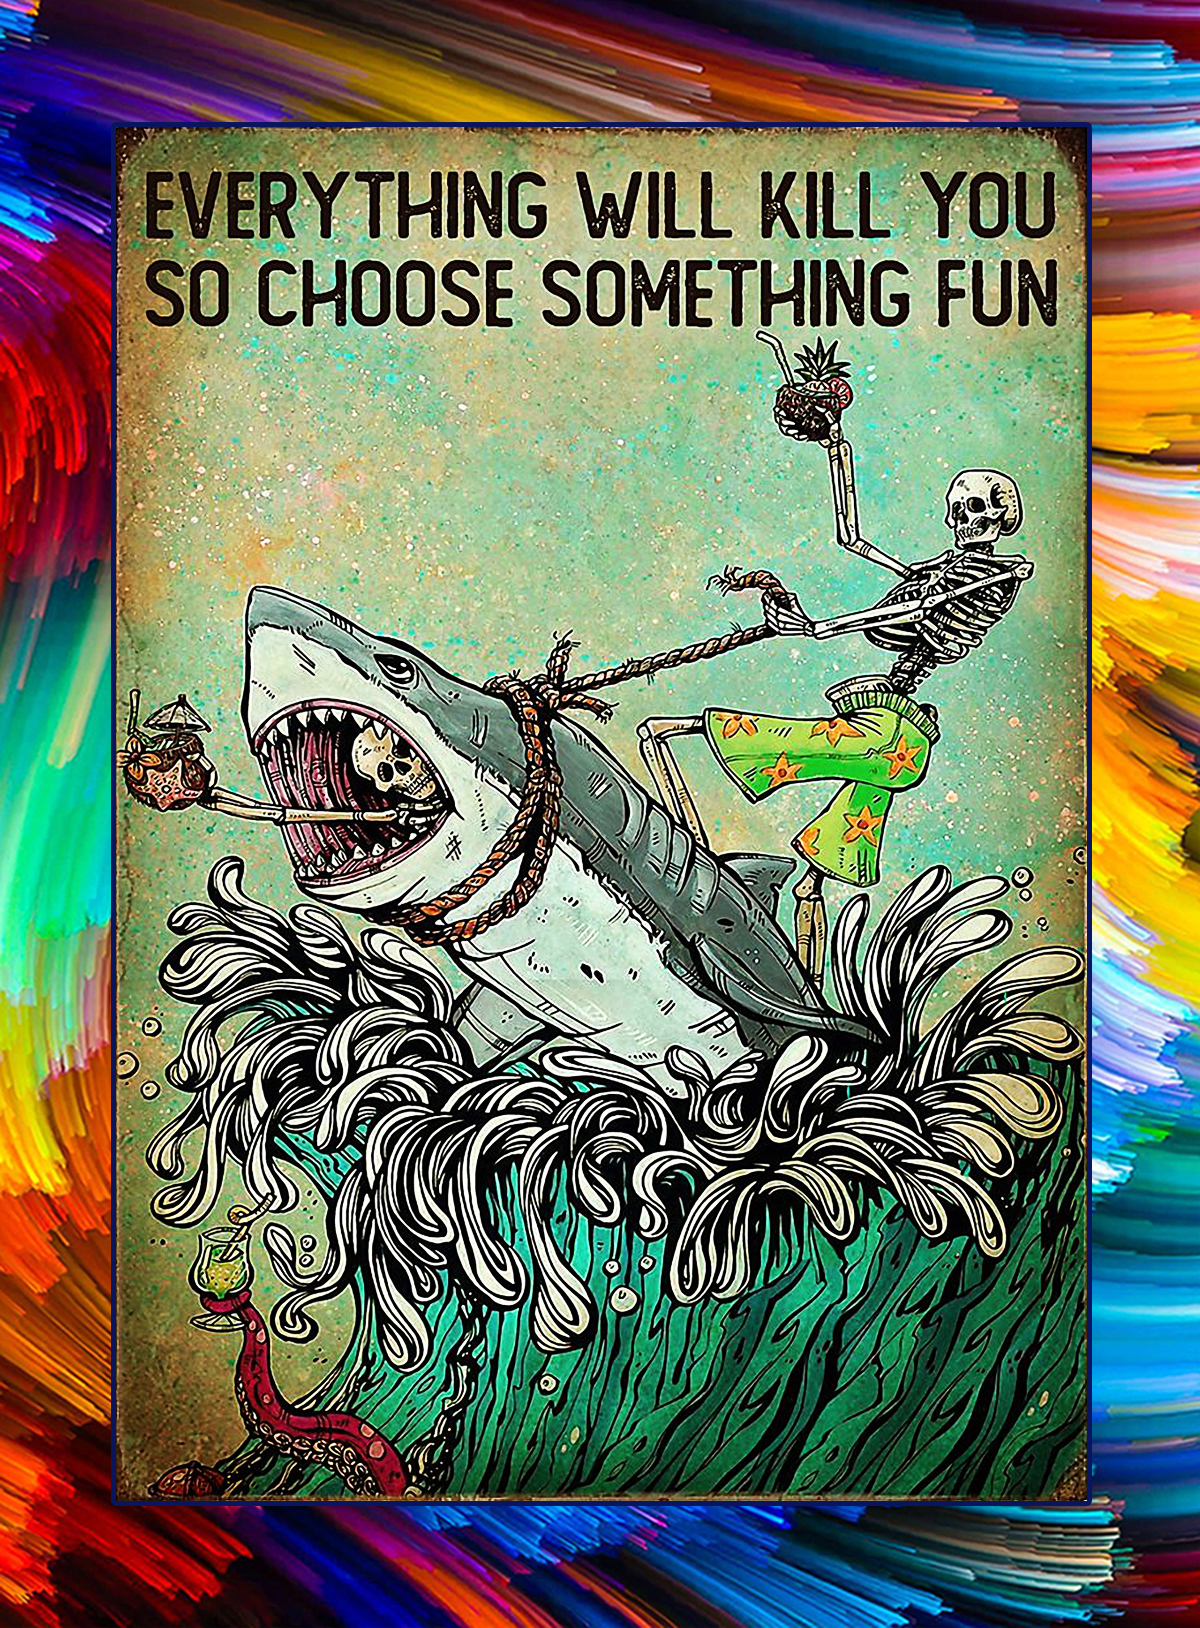 Skeleton shark everything will kill you so choose something fun poster - A4